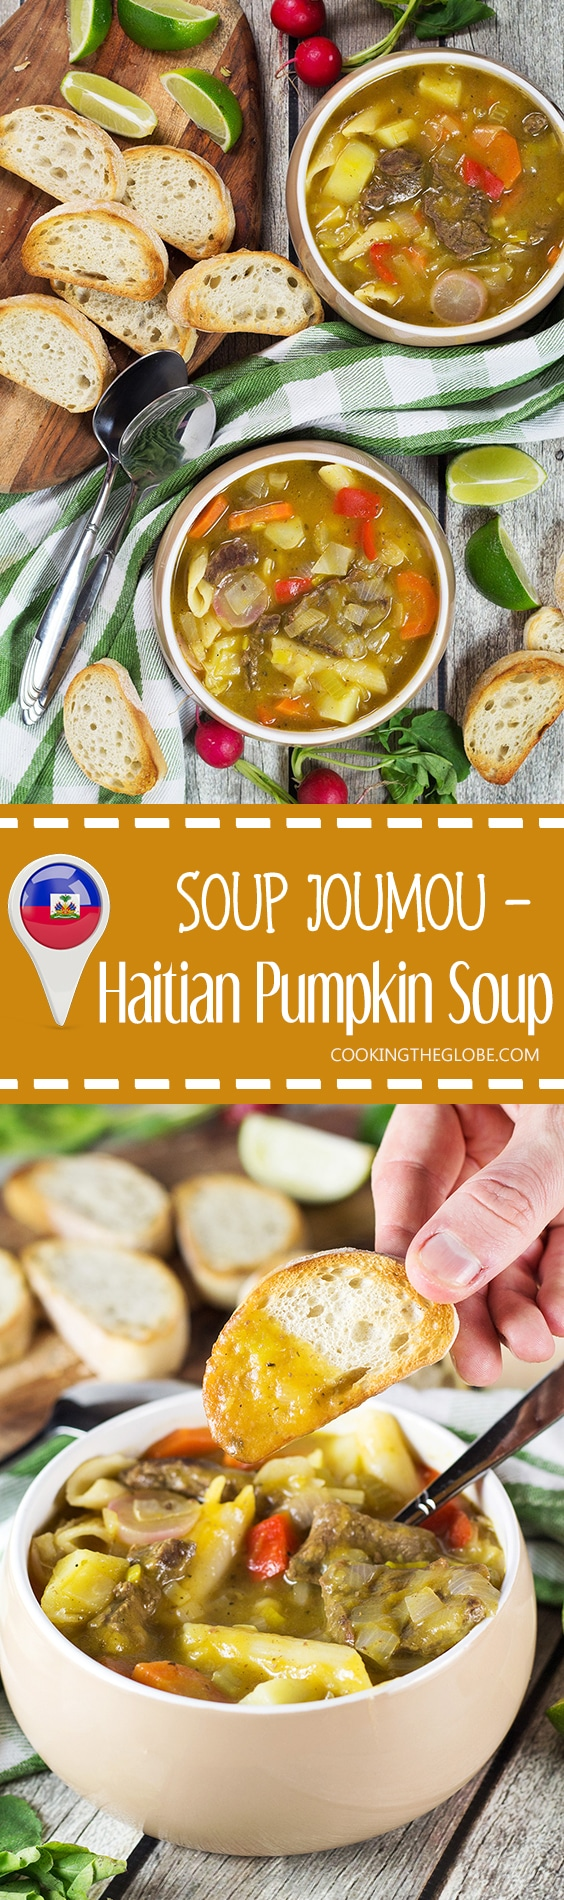 Soup Joumou is a traditional Haitian pumpkin soup packed with 11 different veggies, beef, and pasta. Hearty, comforting, and crazy delicious! | cookingtheglobe.com